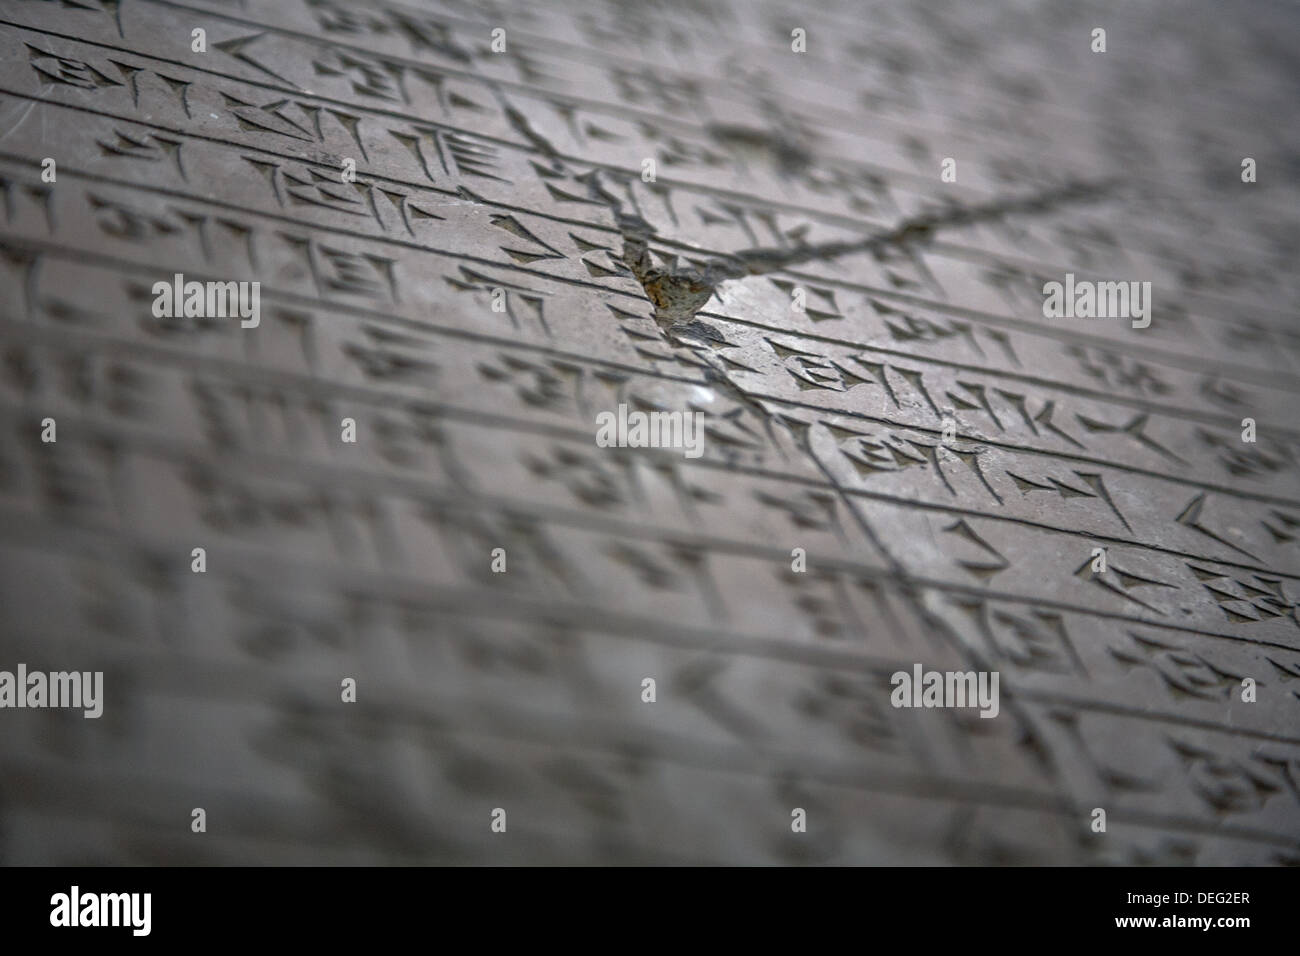 Ancient Persia Writing on Stone - Stock Image